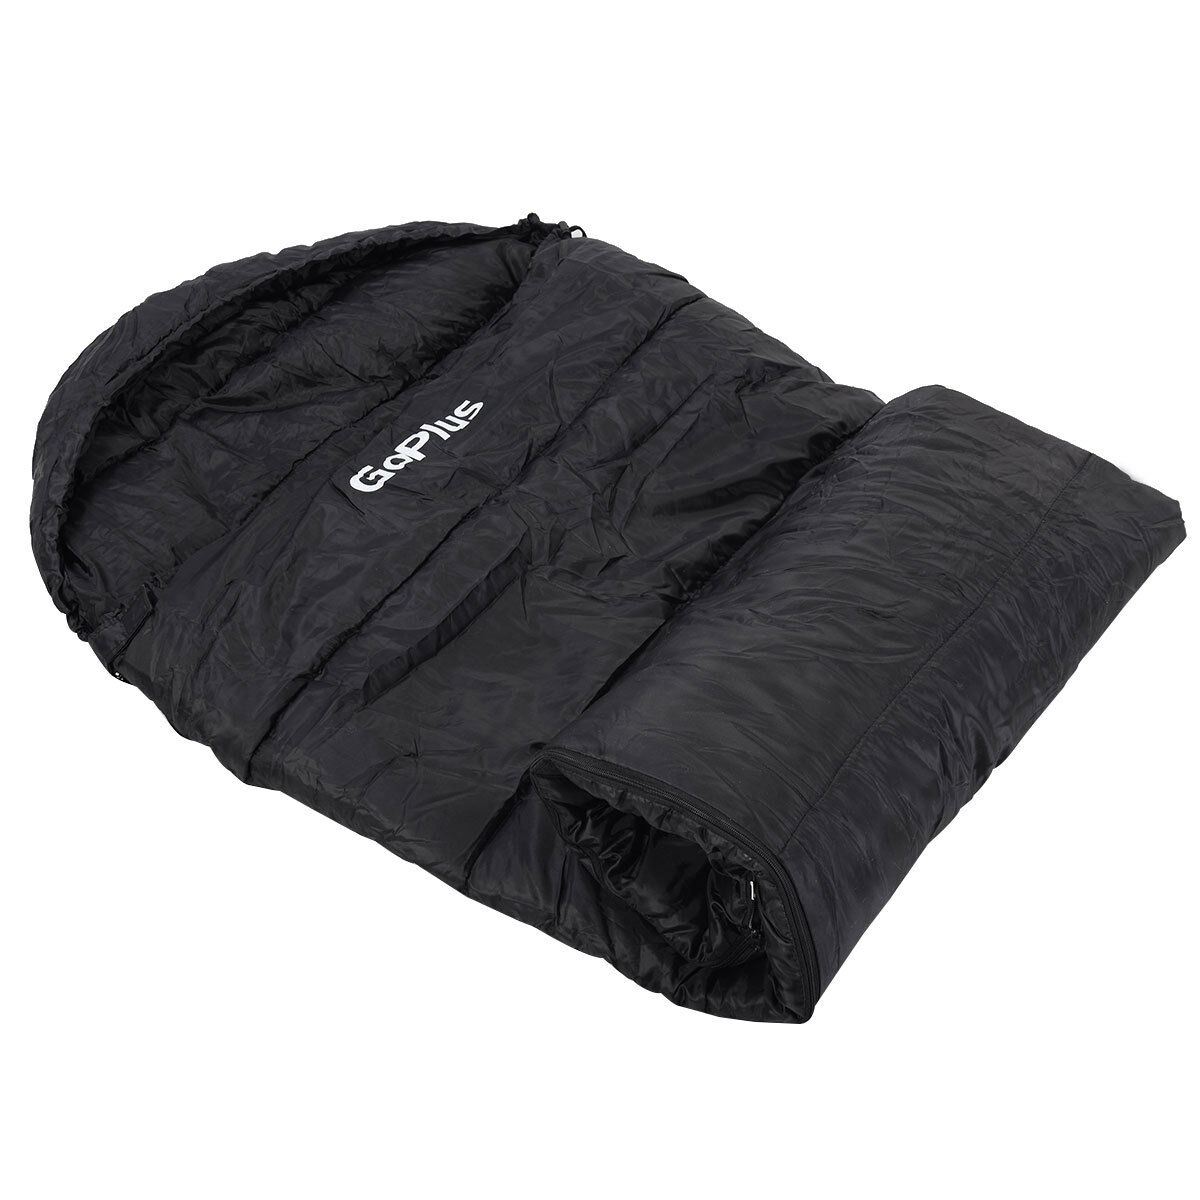 New-Mummy-Waterproof-Outdoor-Sleeping-Bag-Camping-Travel-Hiking-W-Carrying-Bag thumbnail 5